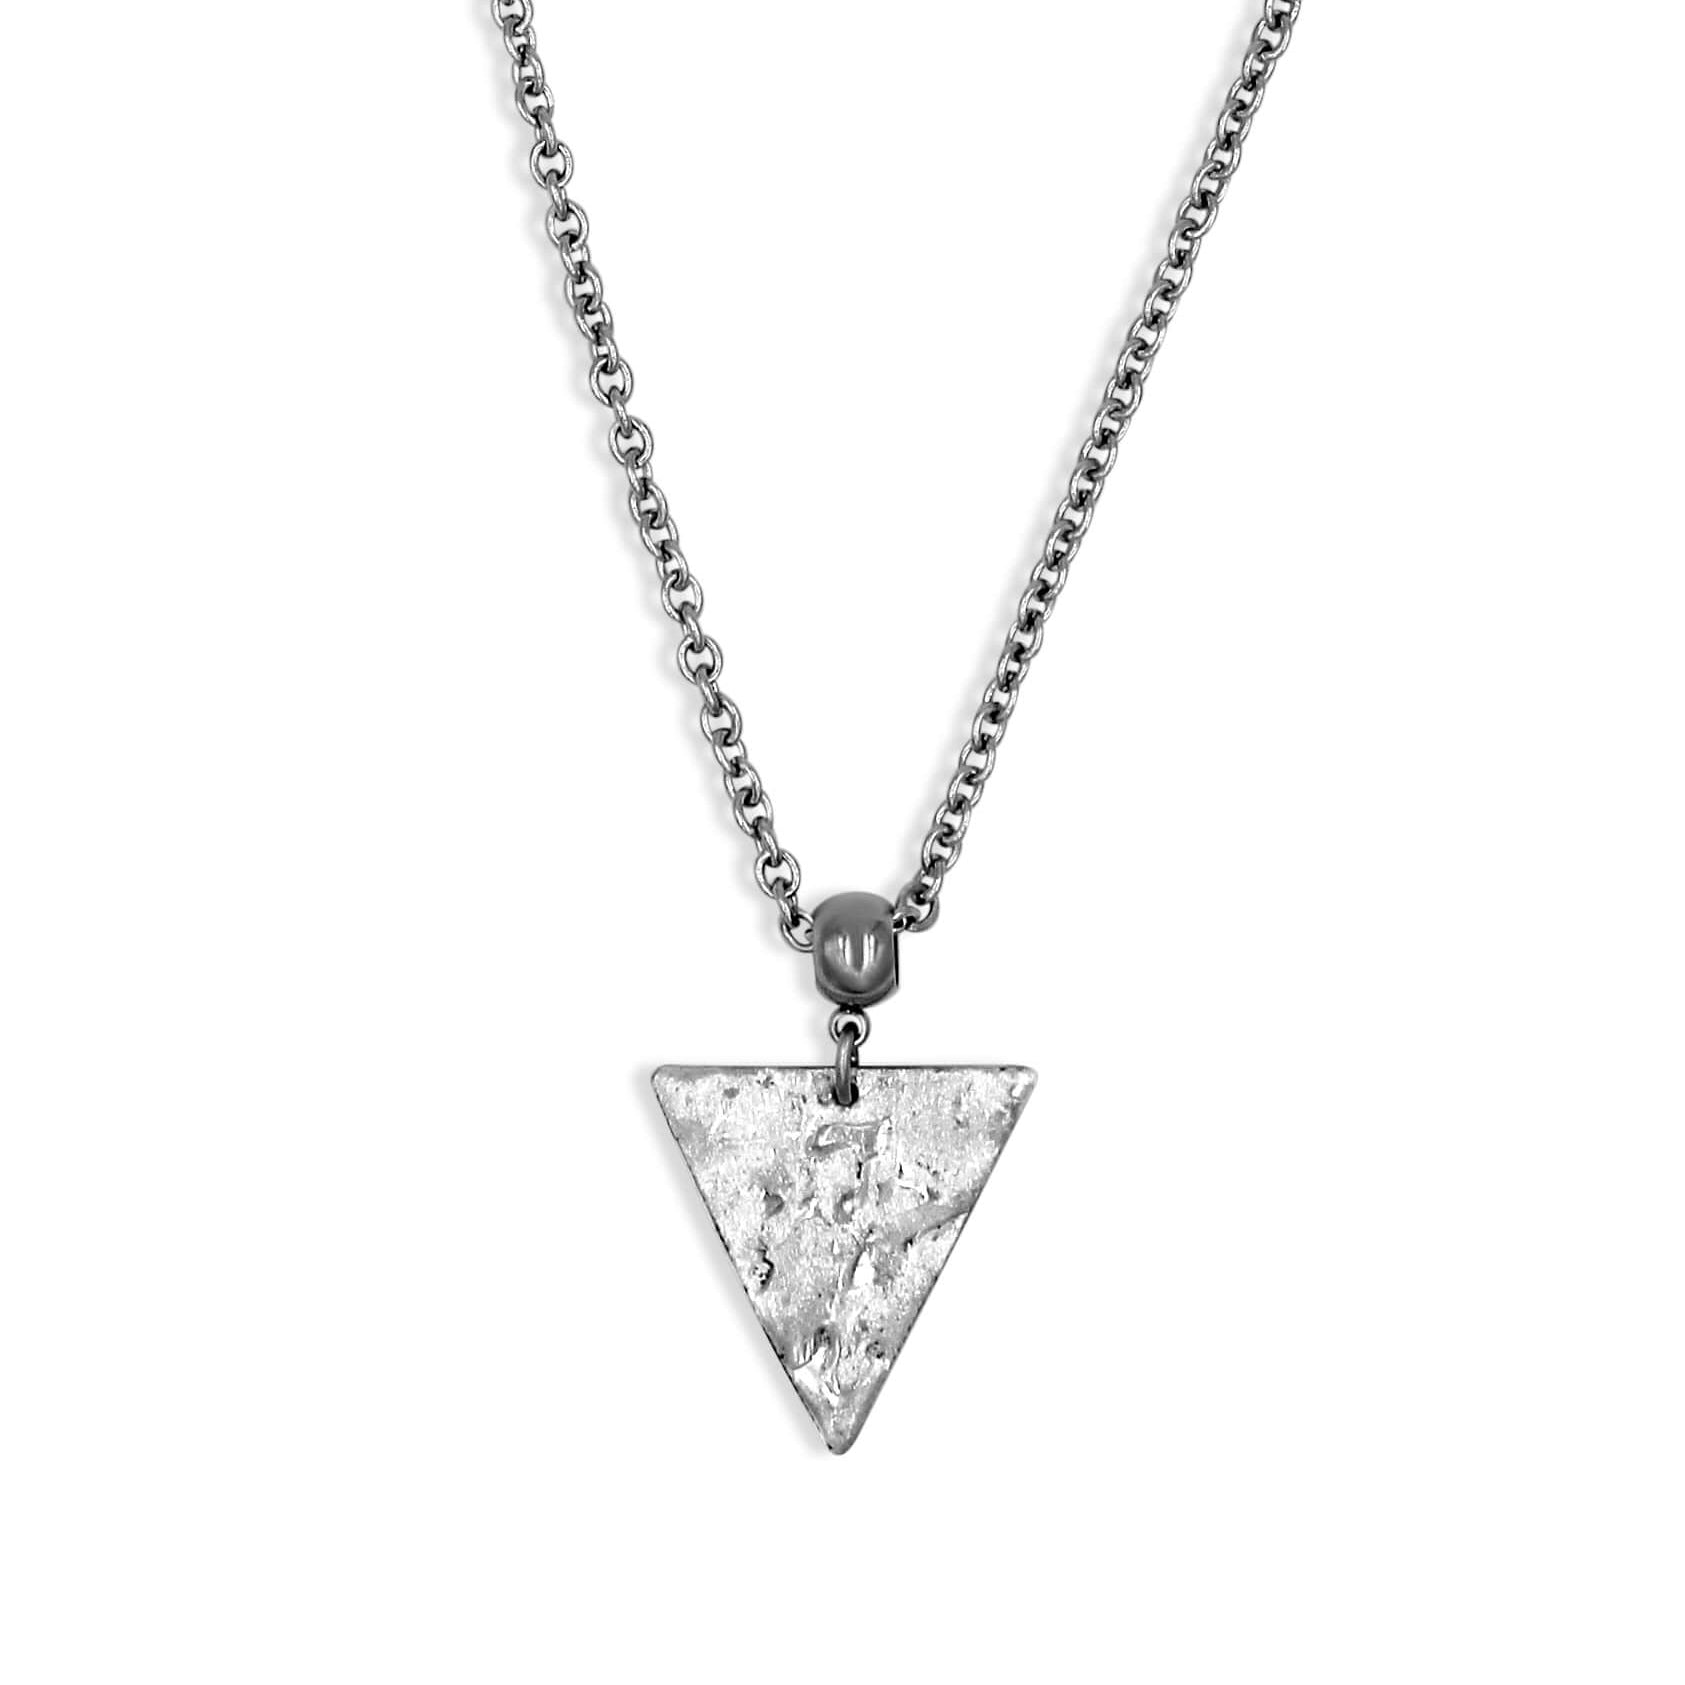 Silver Triangle Pendant Necklace - Creative Jewelry by Marcia - Asymmetrical Jewelry - Timeless Jewelry